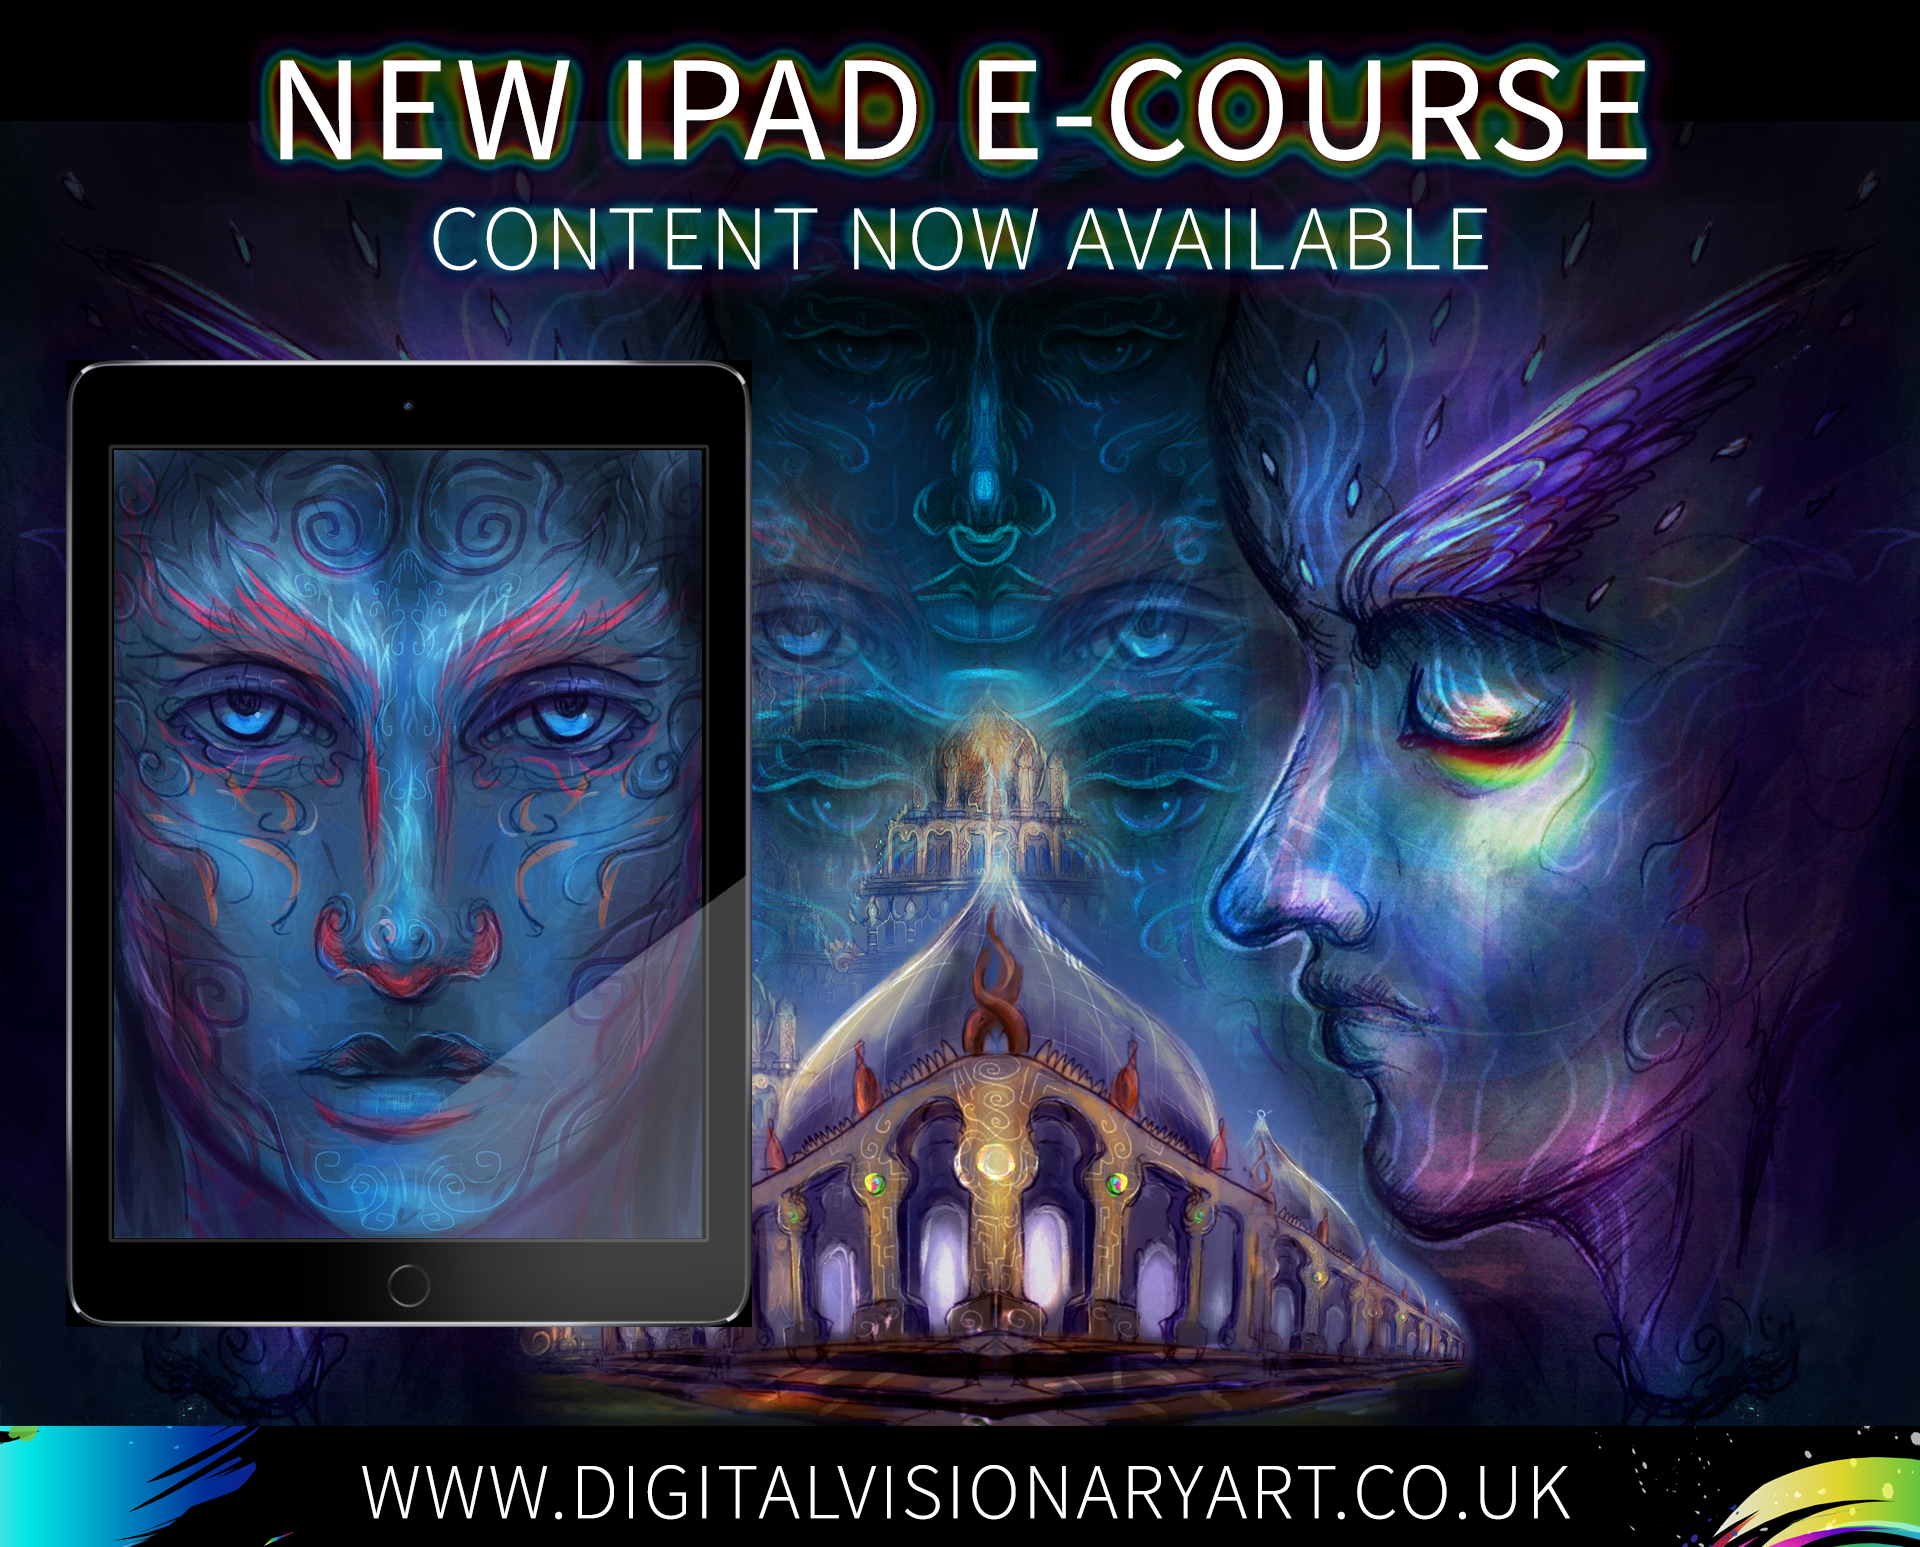 Learn how to create digital art on your iPad